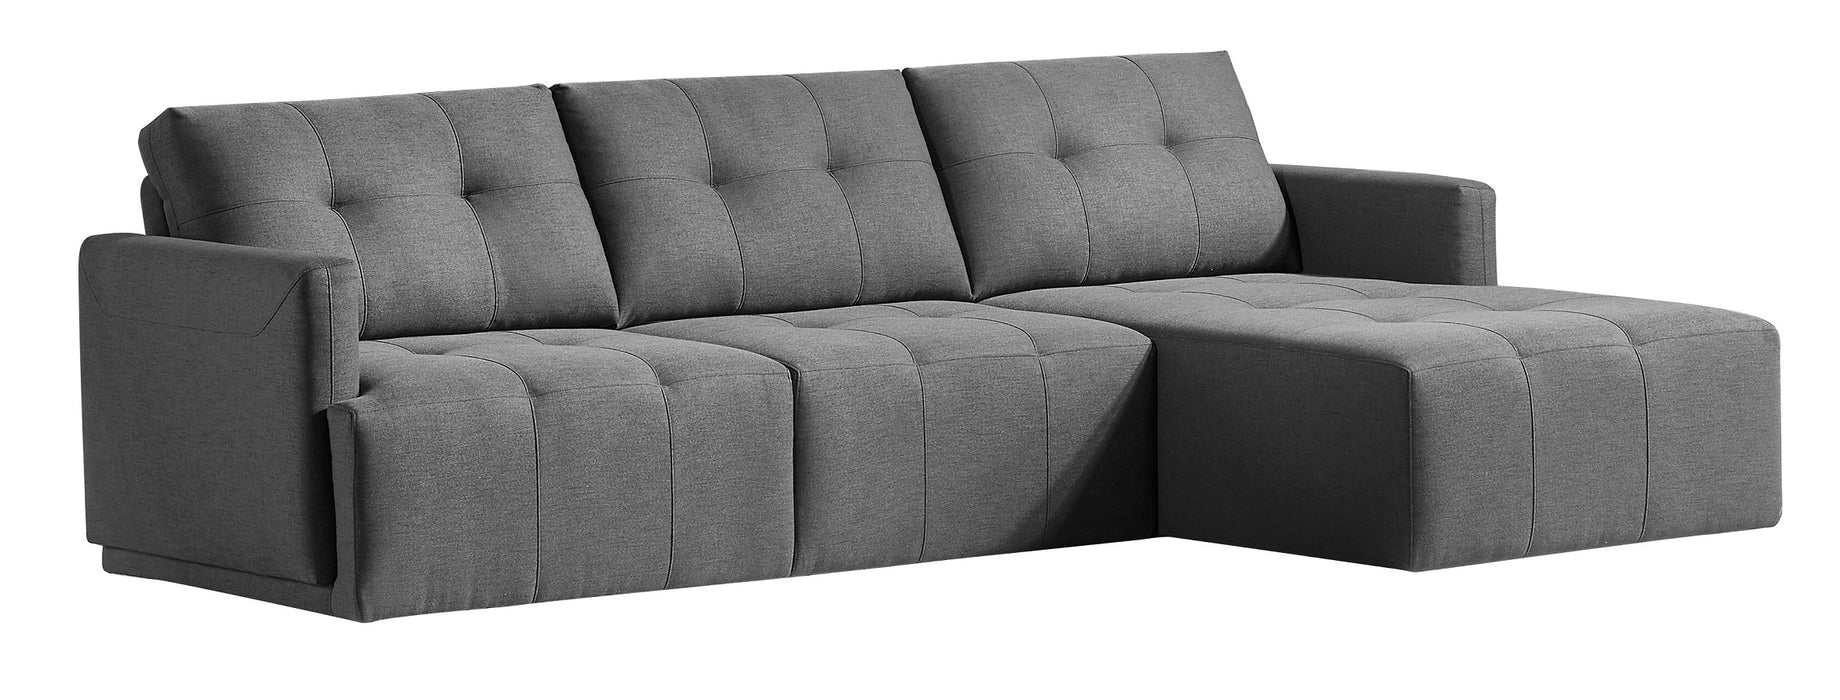 New Classic Furniture | Living Sectional in New Jersey, NJ 6396